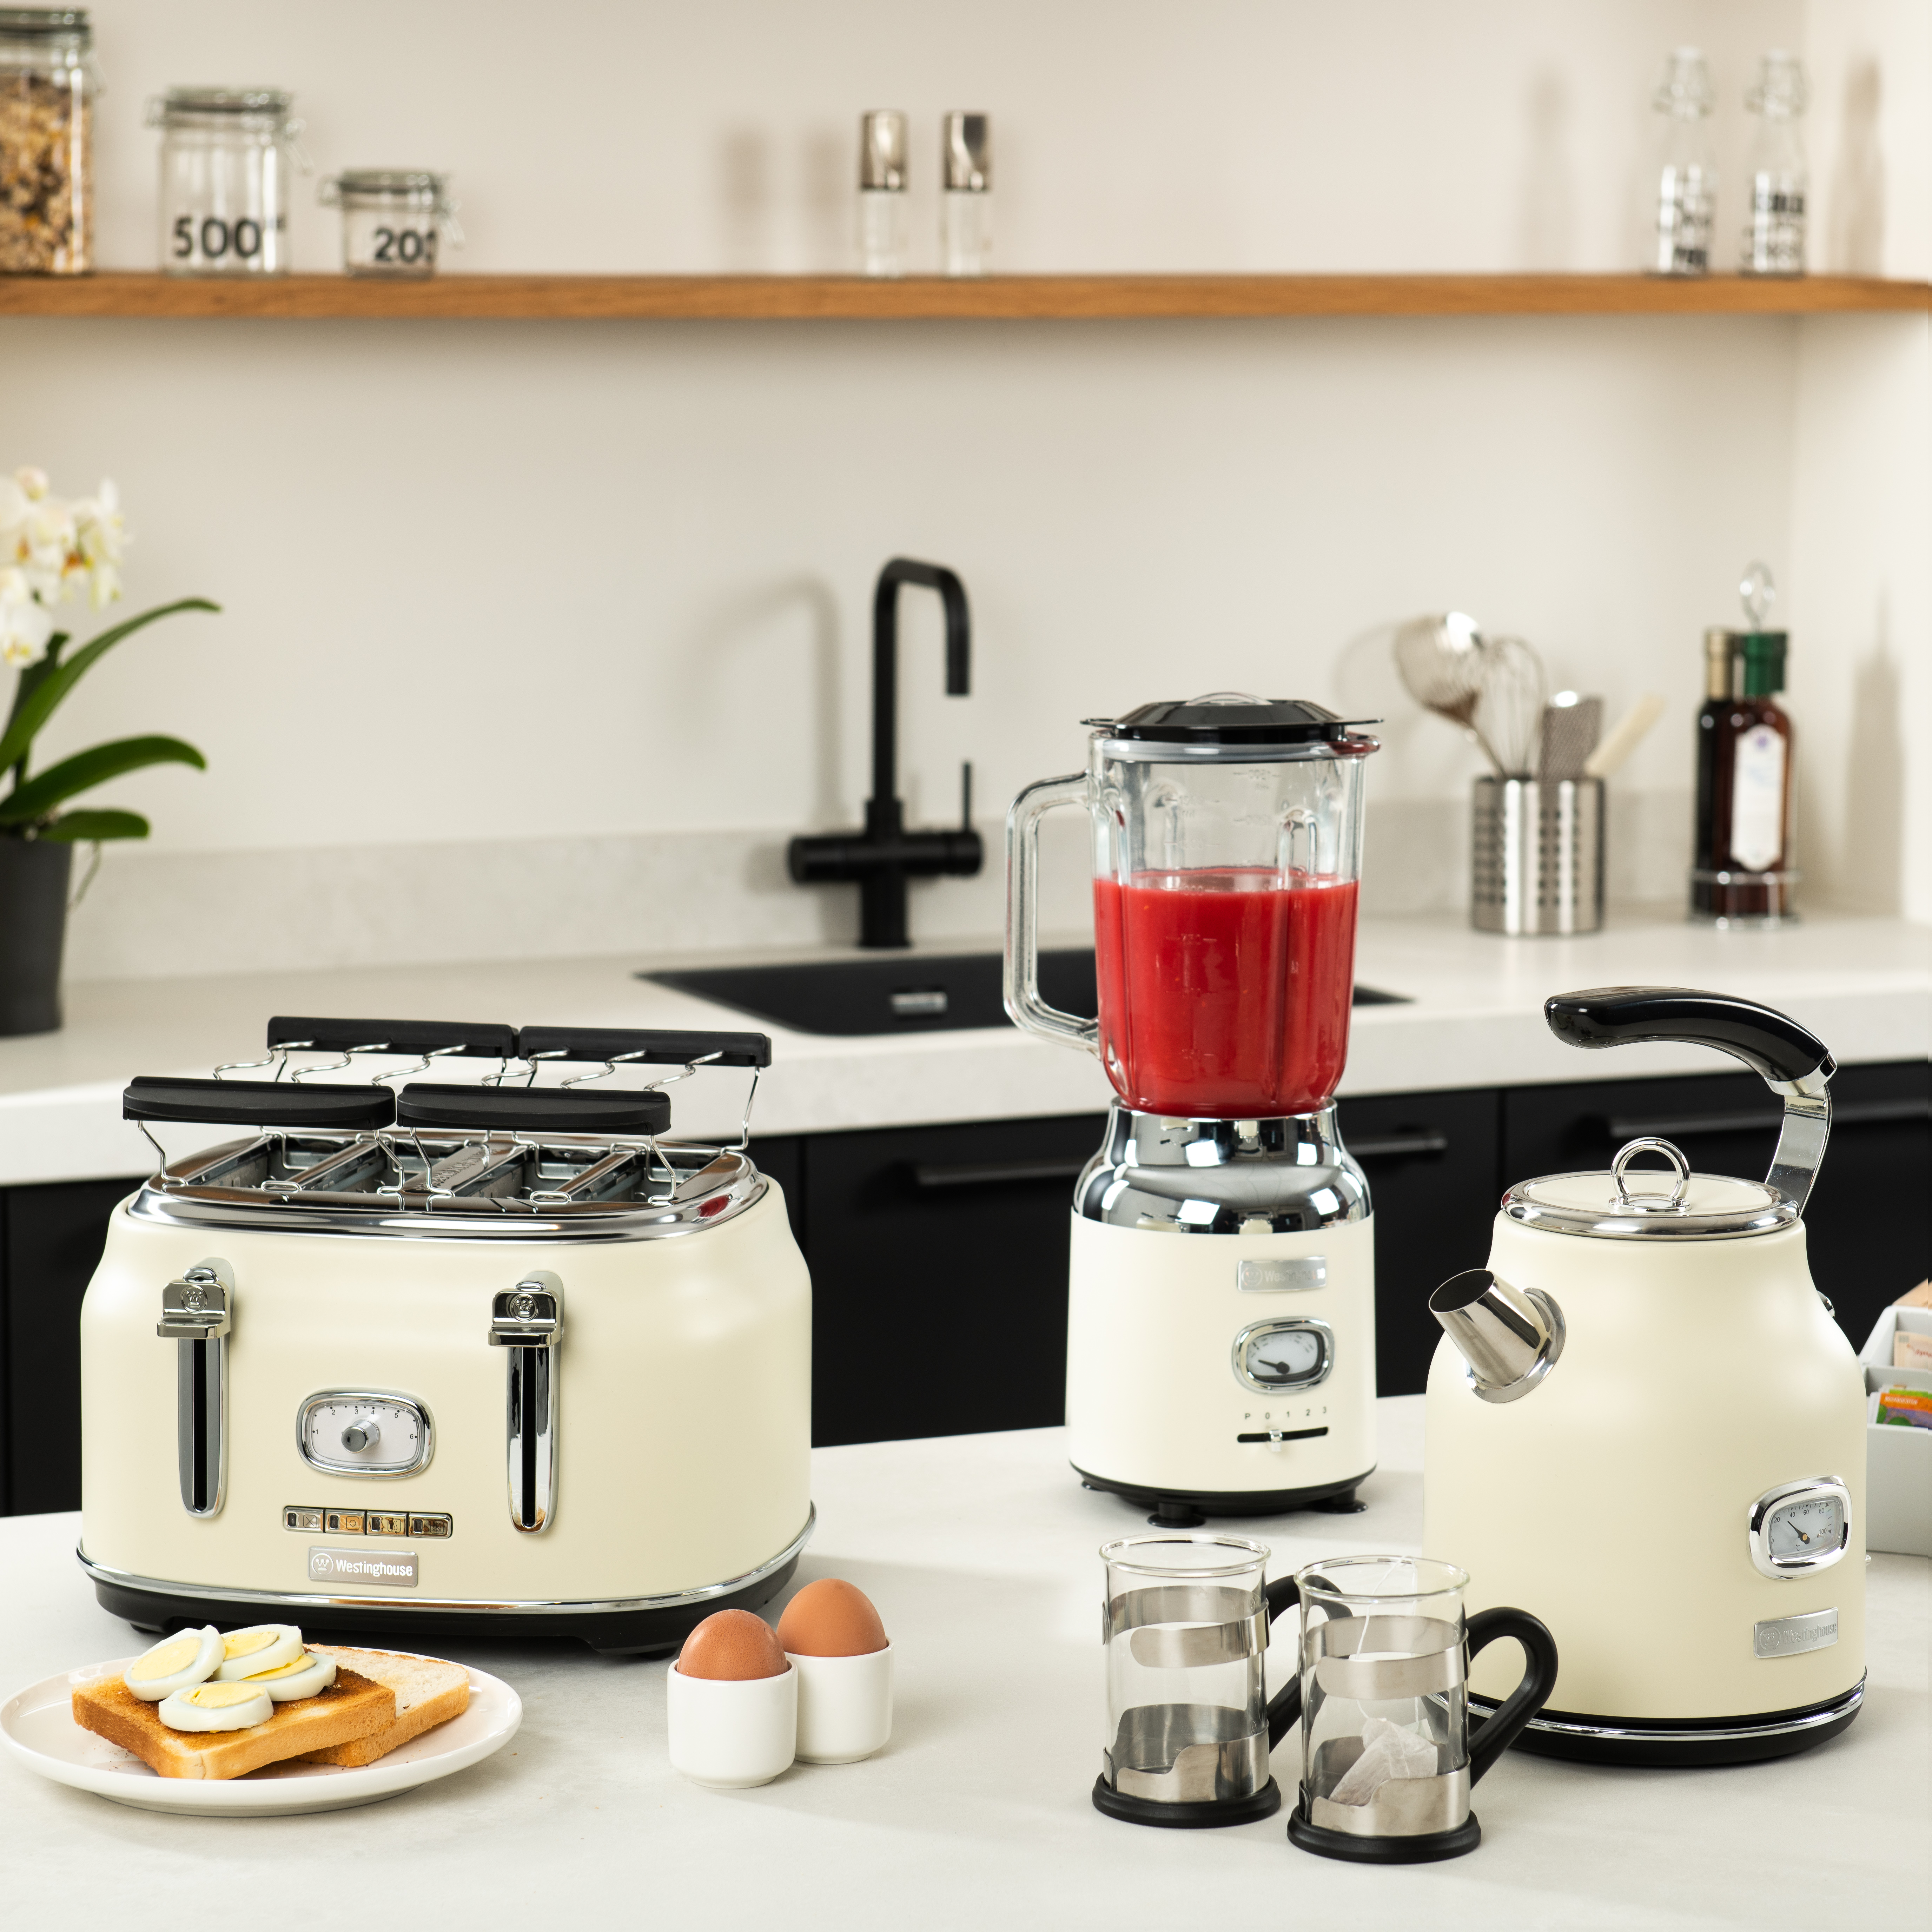 Westinghouse Homeware retro styled small kitchen appliances including a white kettle, blender and toaster set on a counter top.